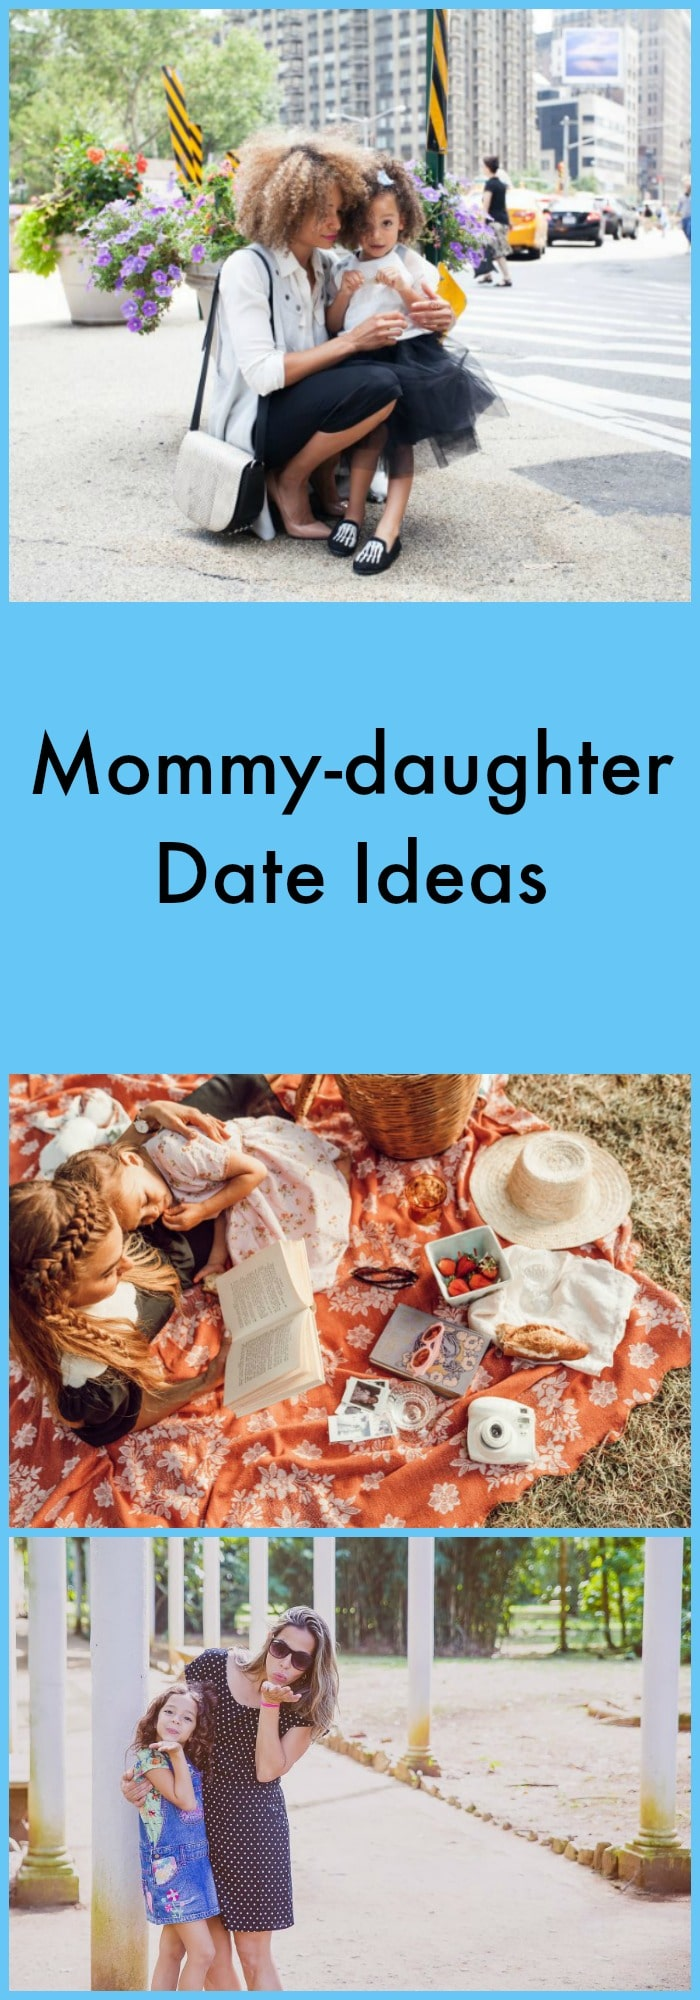 Mommy-daughter Date Ideas